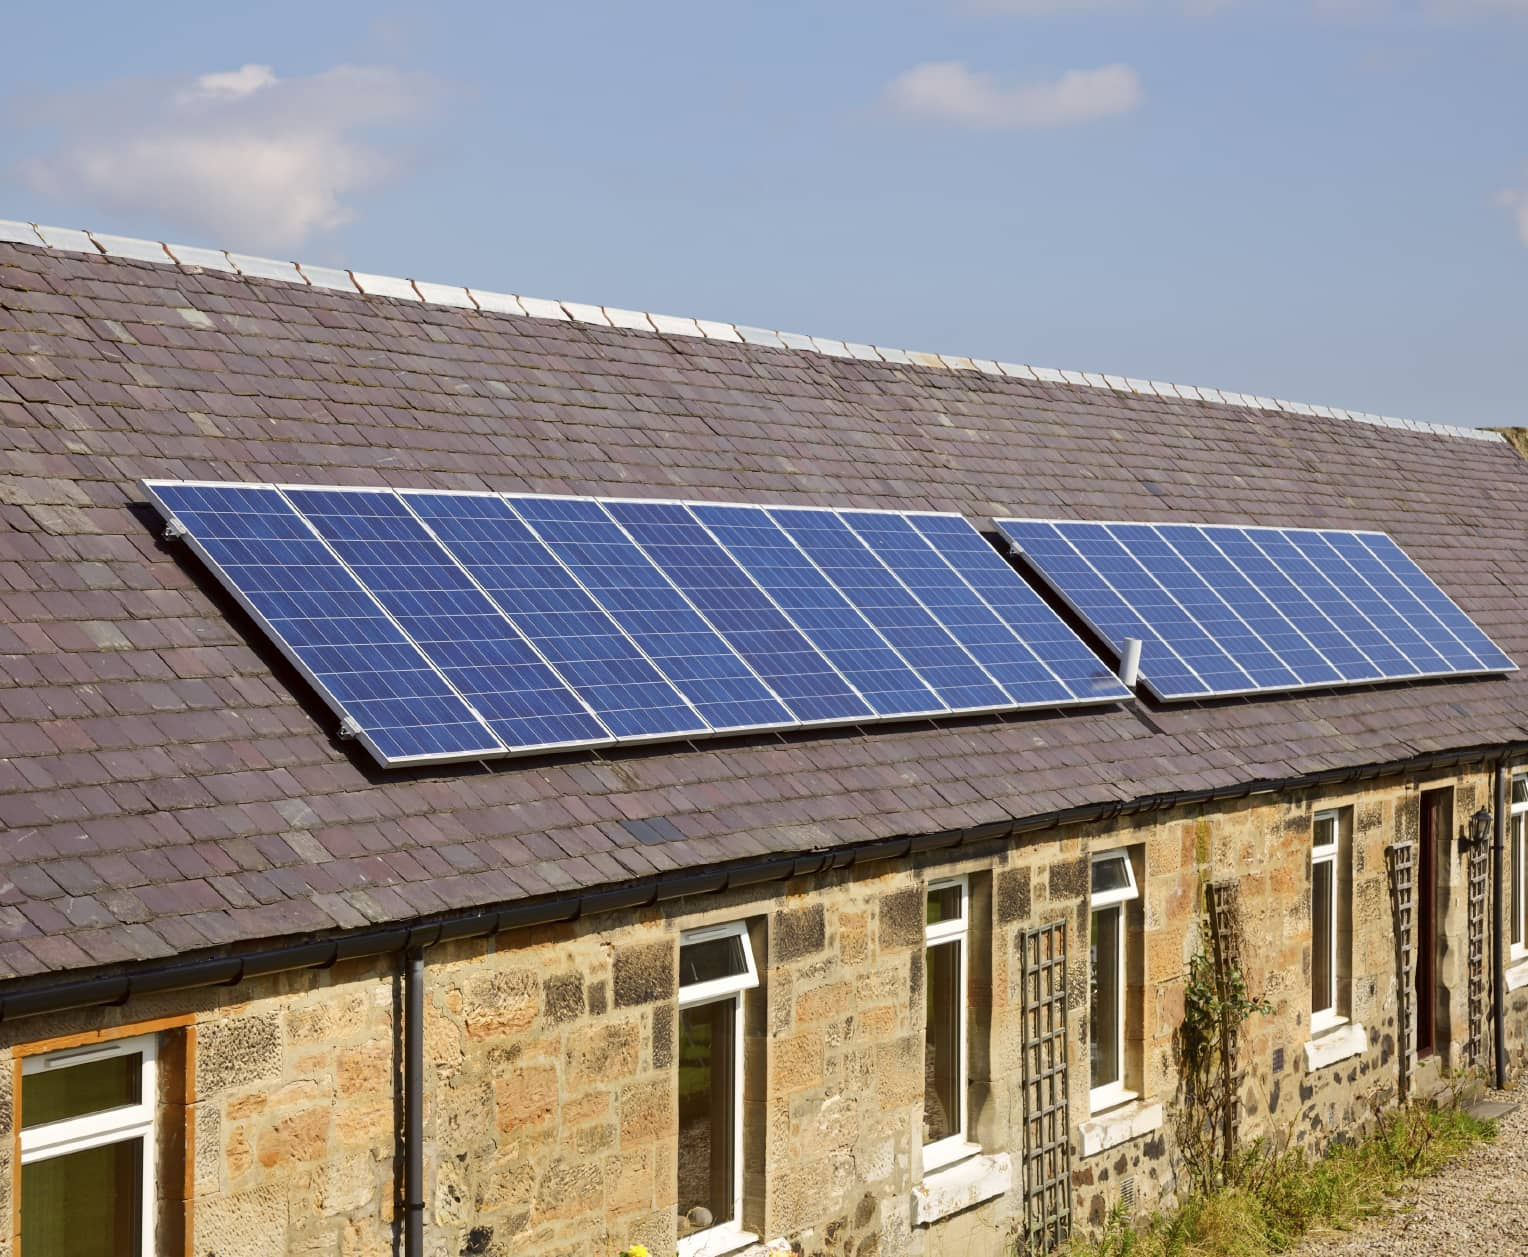 iStock_000022180748_Medium Nonprofits Launch Low-Income Solar Policy Guide